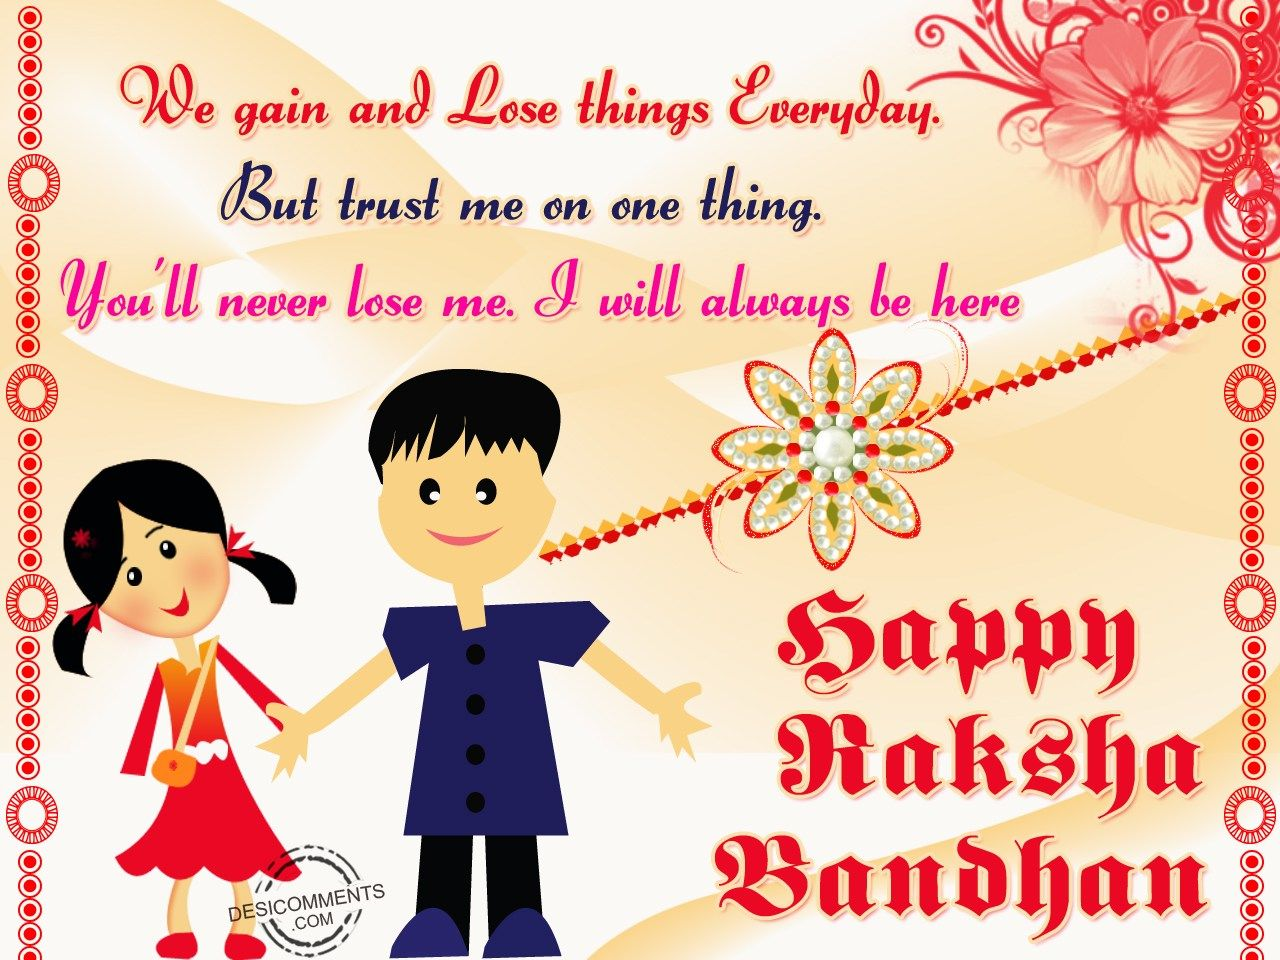 17 best ideas about raksha bandhan raksha bandhan 17 best ideas about raksha bandhan raksha bandhan songs raksha bandhan cards and raksha bandhan